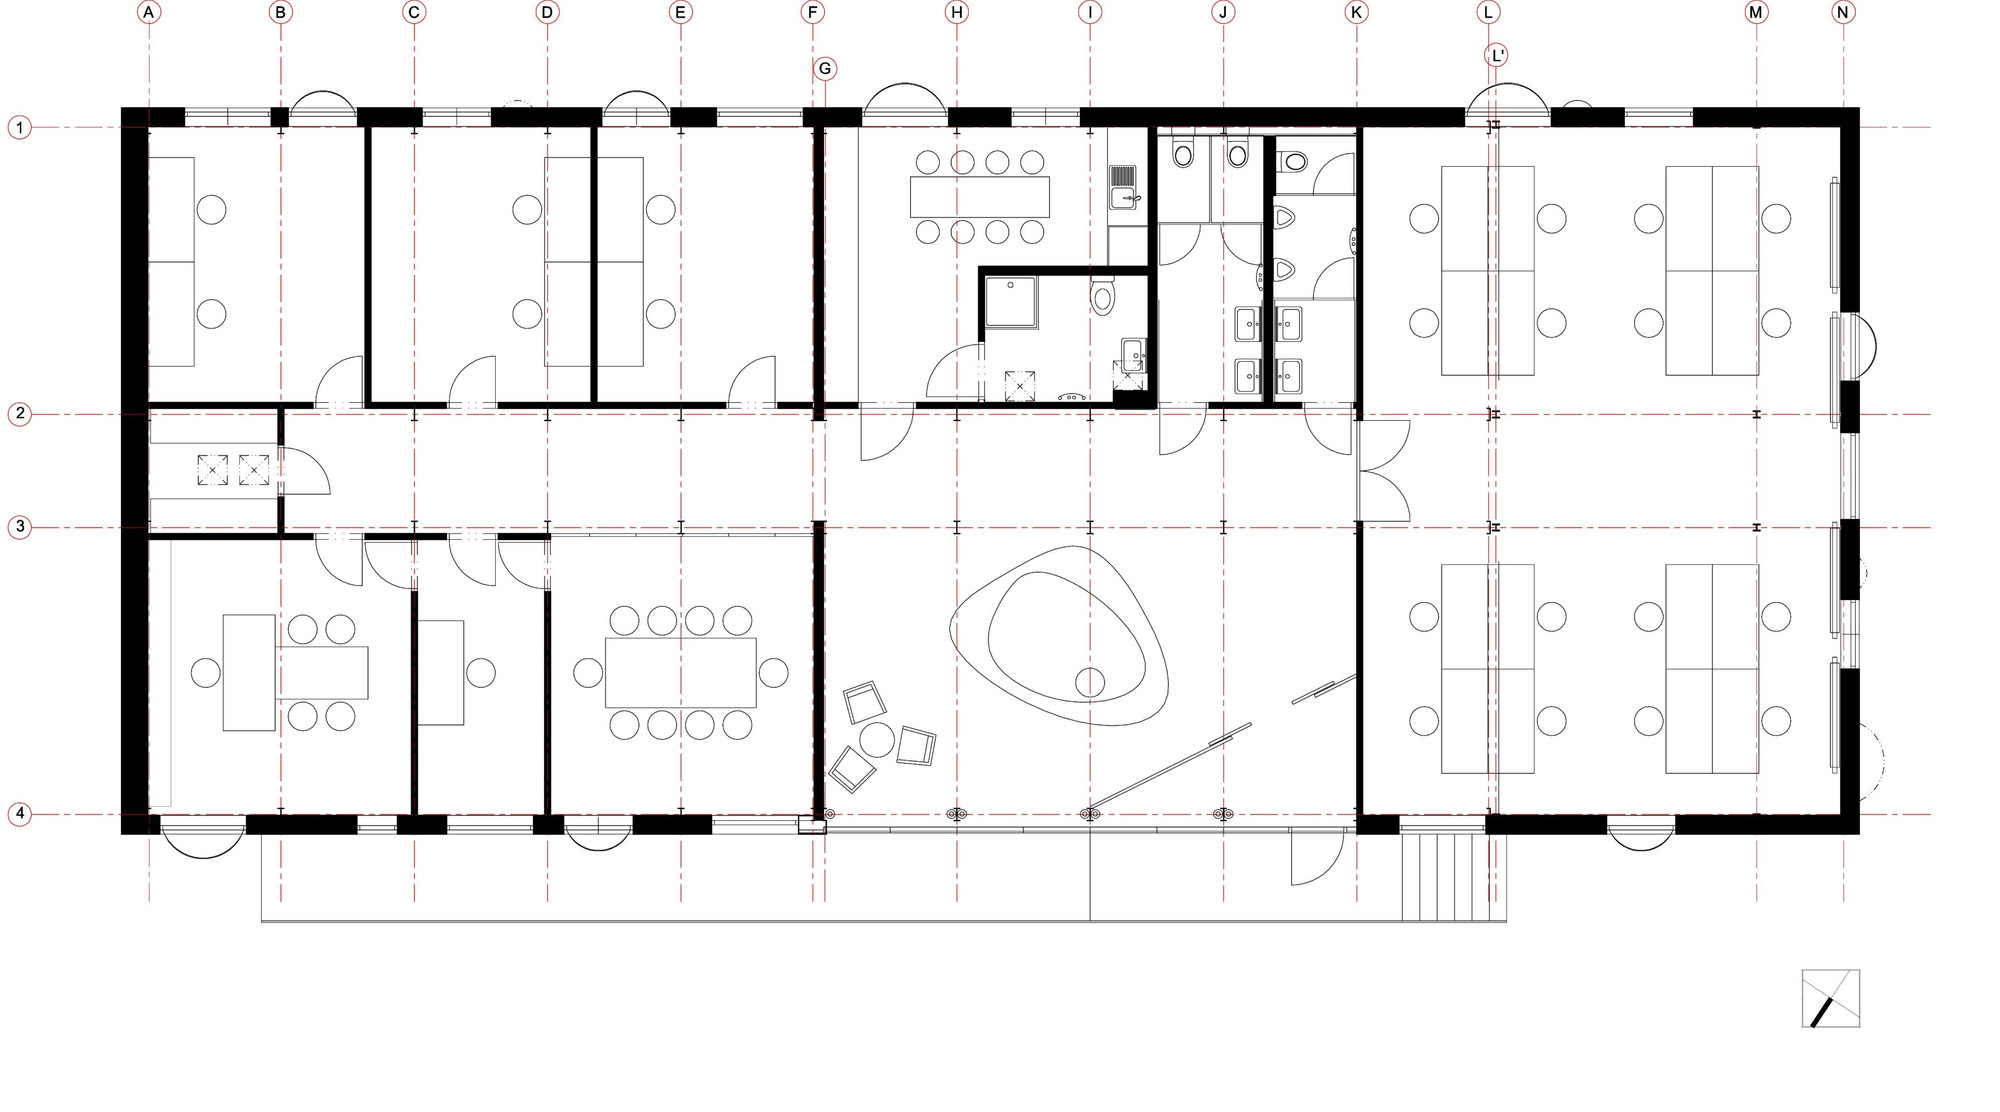 Fine Dining Restaurant Kitchen Layout Restaurant Floor Plan Layout With Kitchen Layout Included